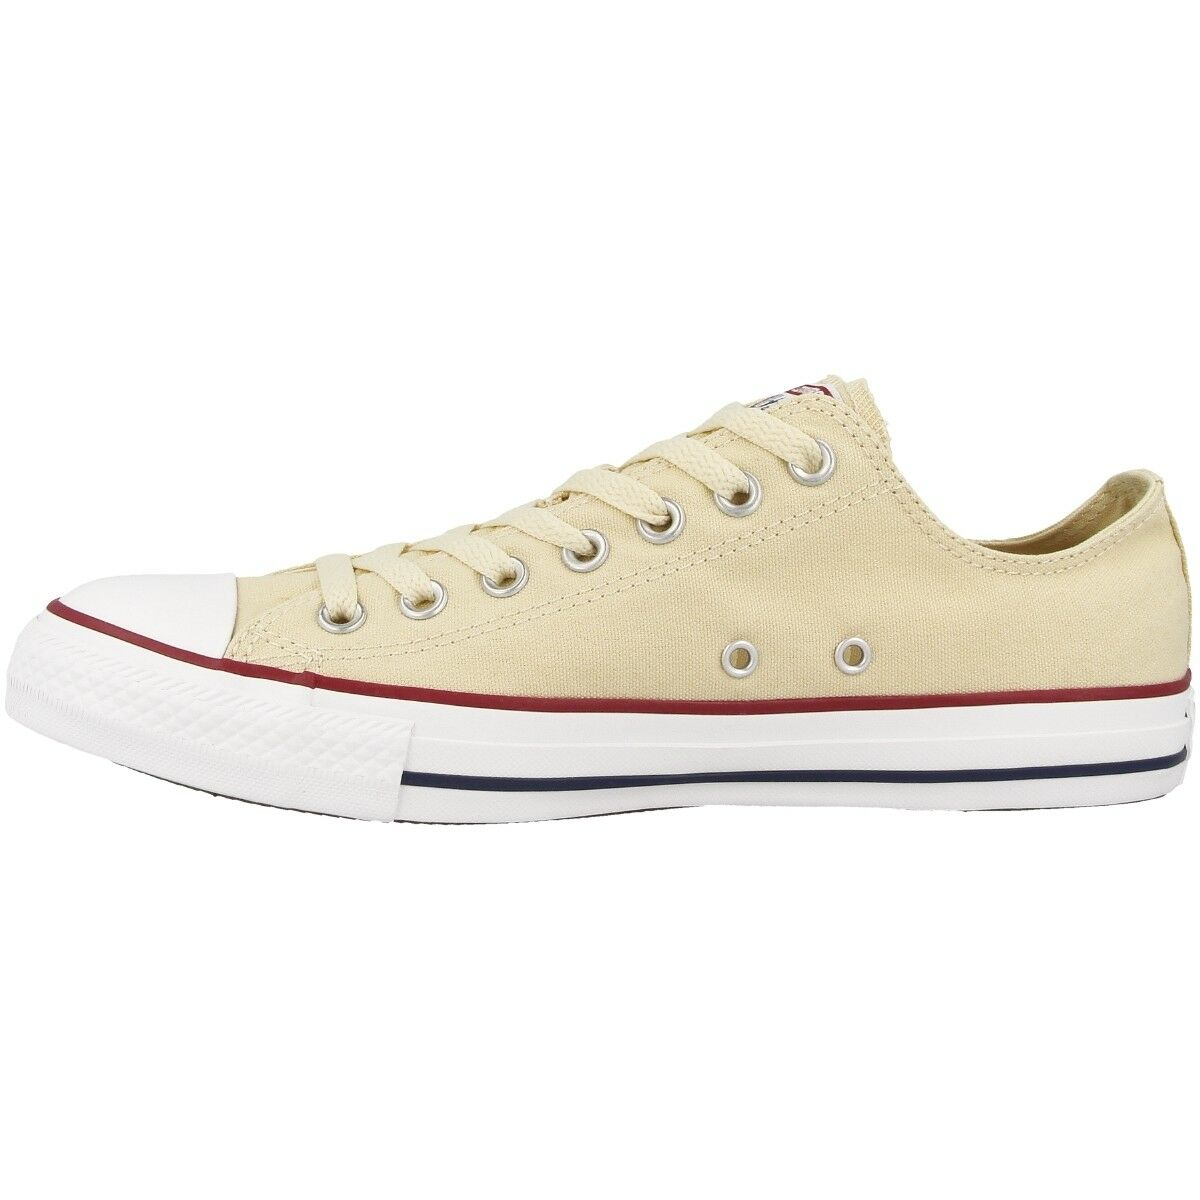 Converse Chuck taylor all star OX chaussures m9165c Natural blanc Turnchaussures Chuck